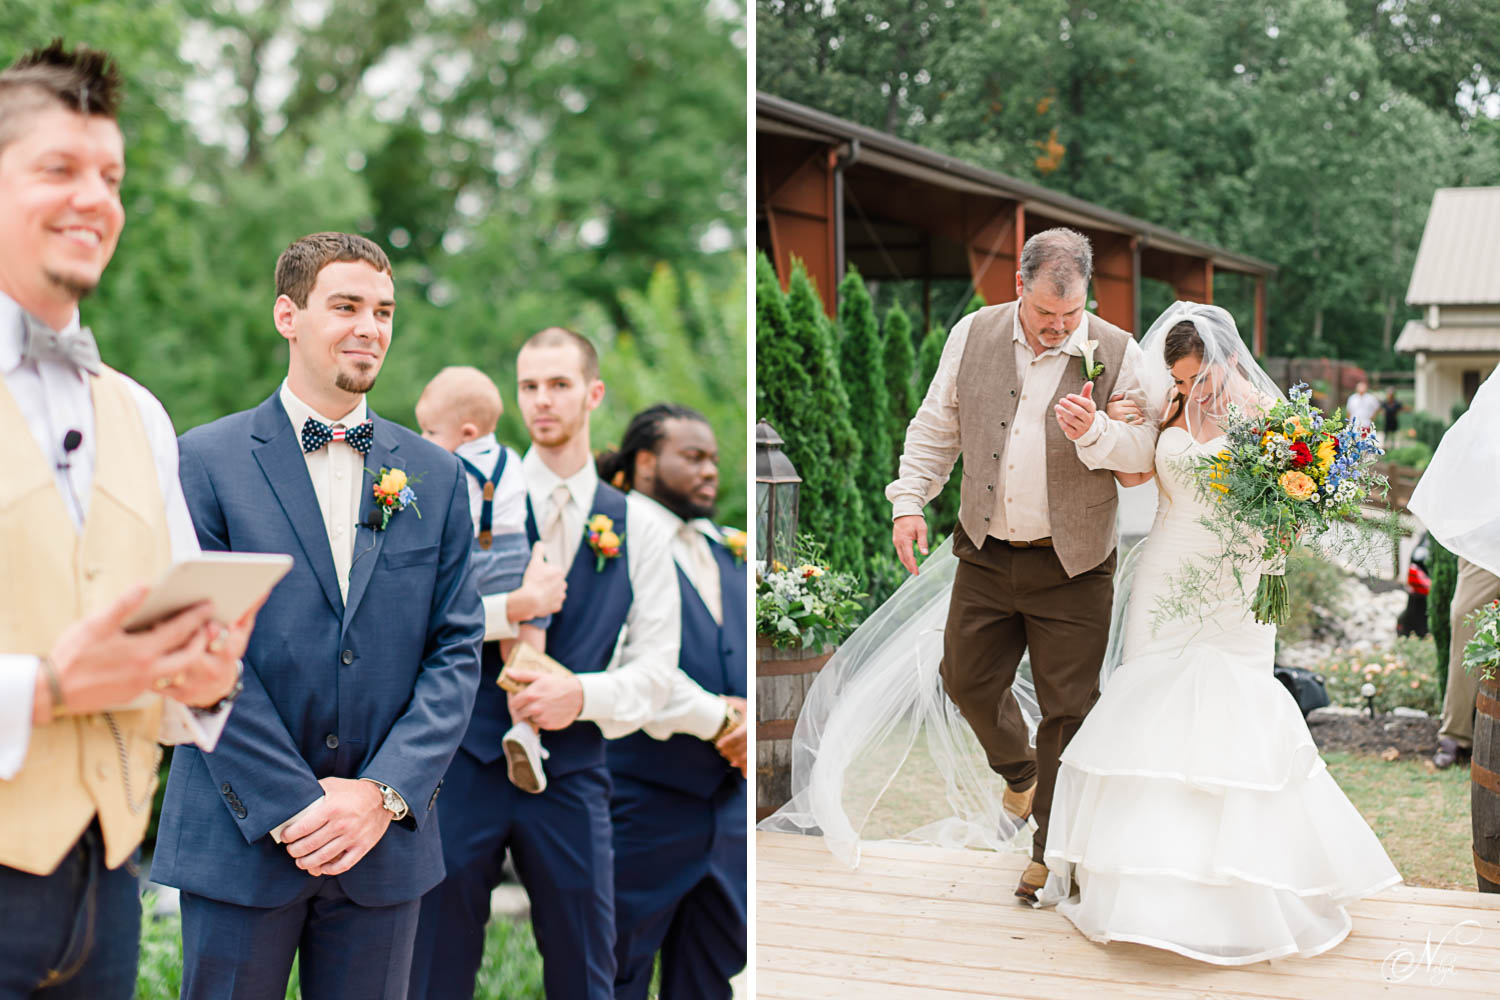 groom seeing his bride walkdown the aisle for the first time